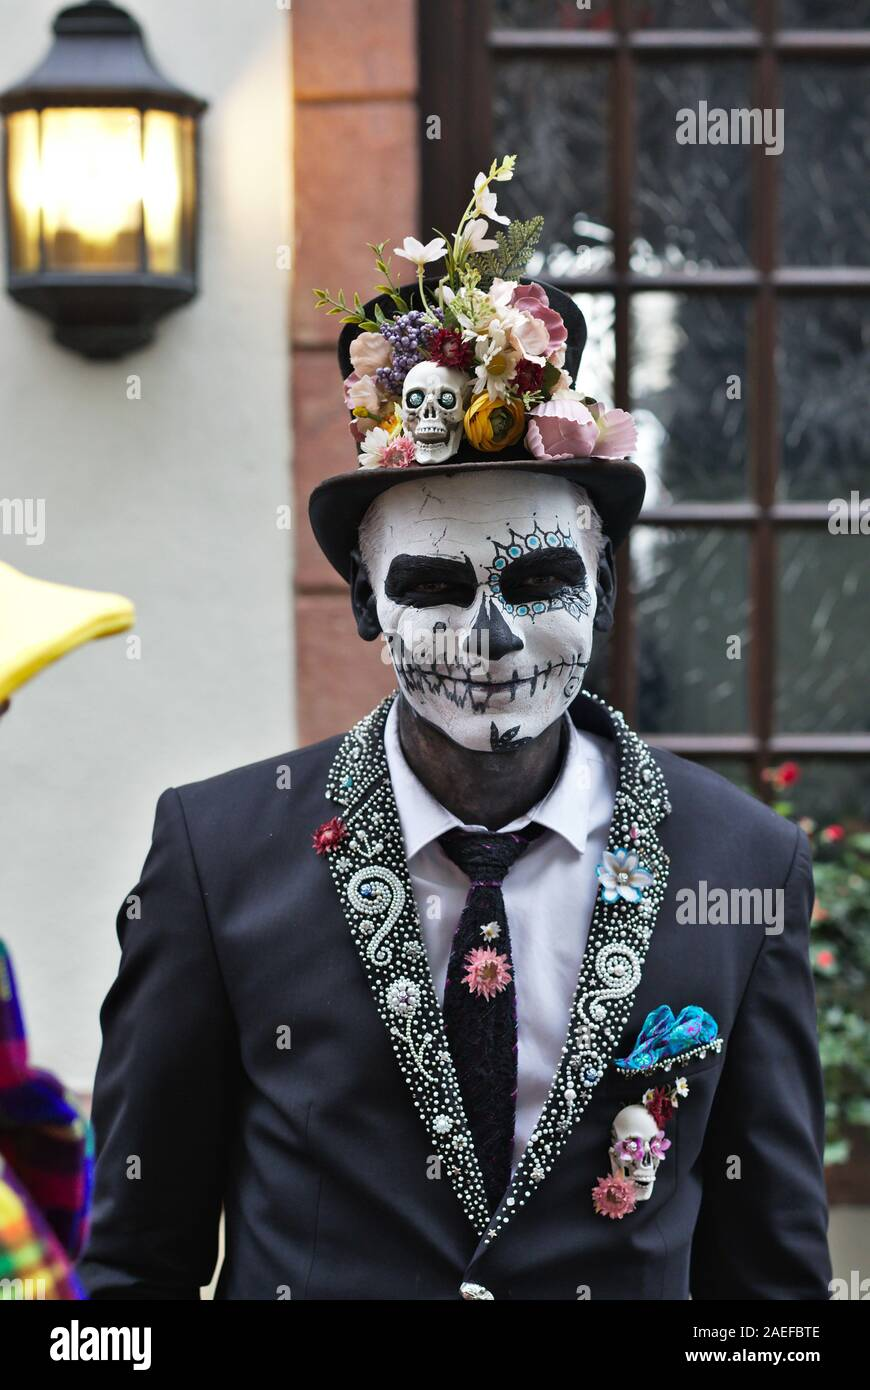 real-costumed-people-in-carnival-costume-celebrating-the-opening-of-the-2020-season-in-cologne-germany-2AEFBTE.jpg